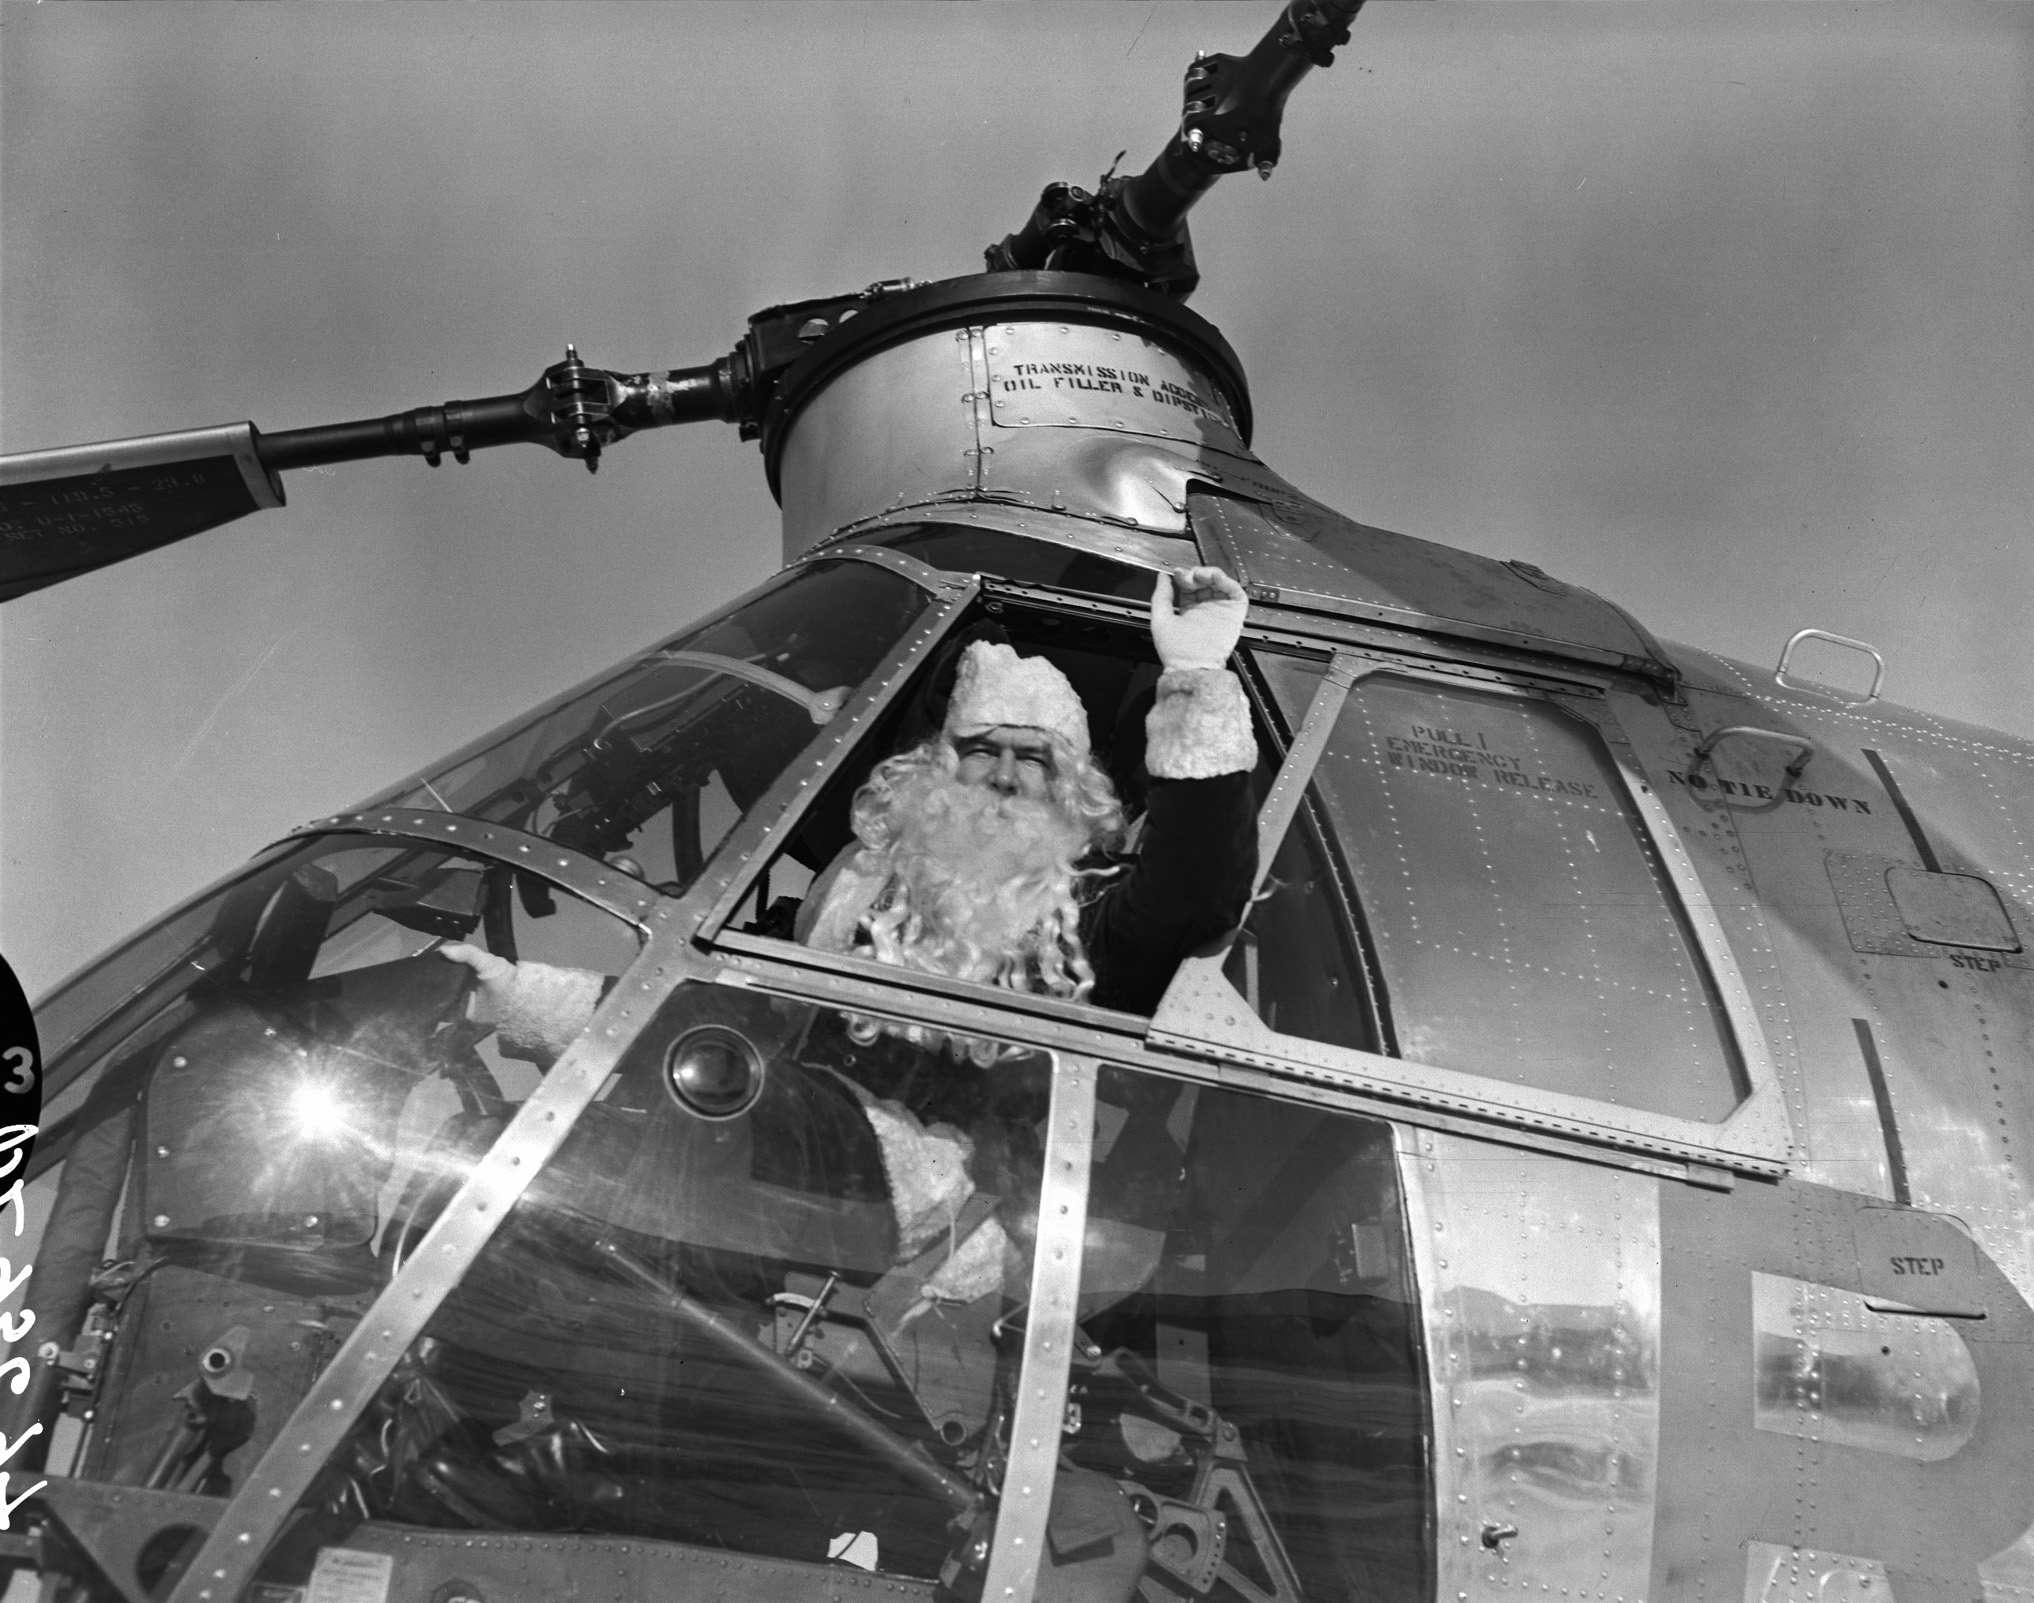 A vintage photo of Santa Claus seated in the cockpit of a helicopter, waving through the open side window.